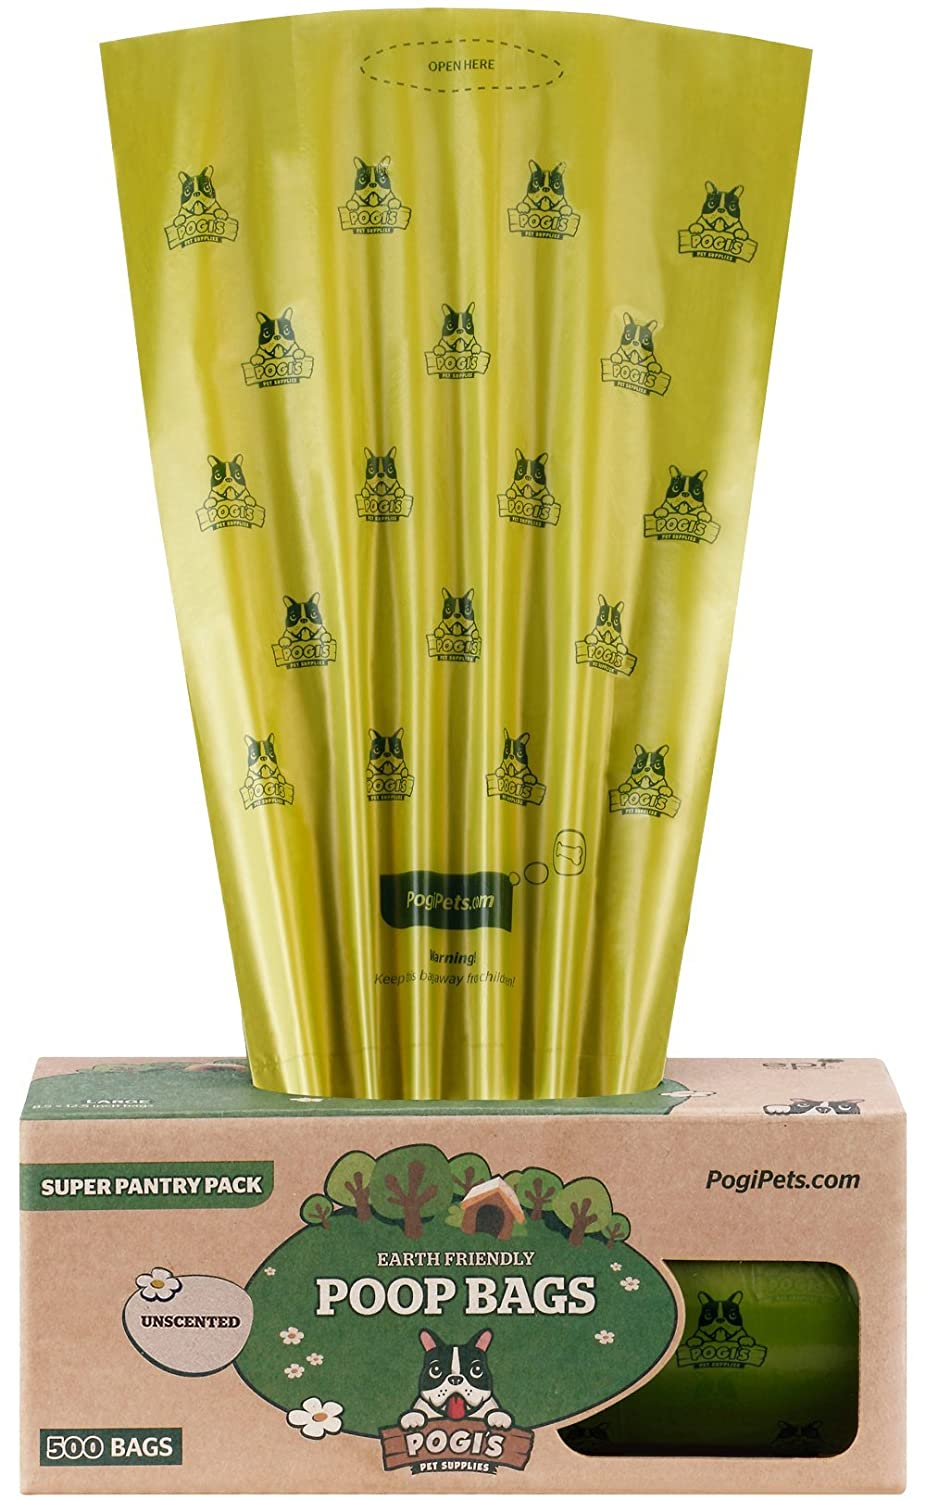 Pogi's Poop Bags 500 Bags for Pantries Earth Friendly Leak Proof Dog Waste Bags Single Large Roll